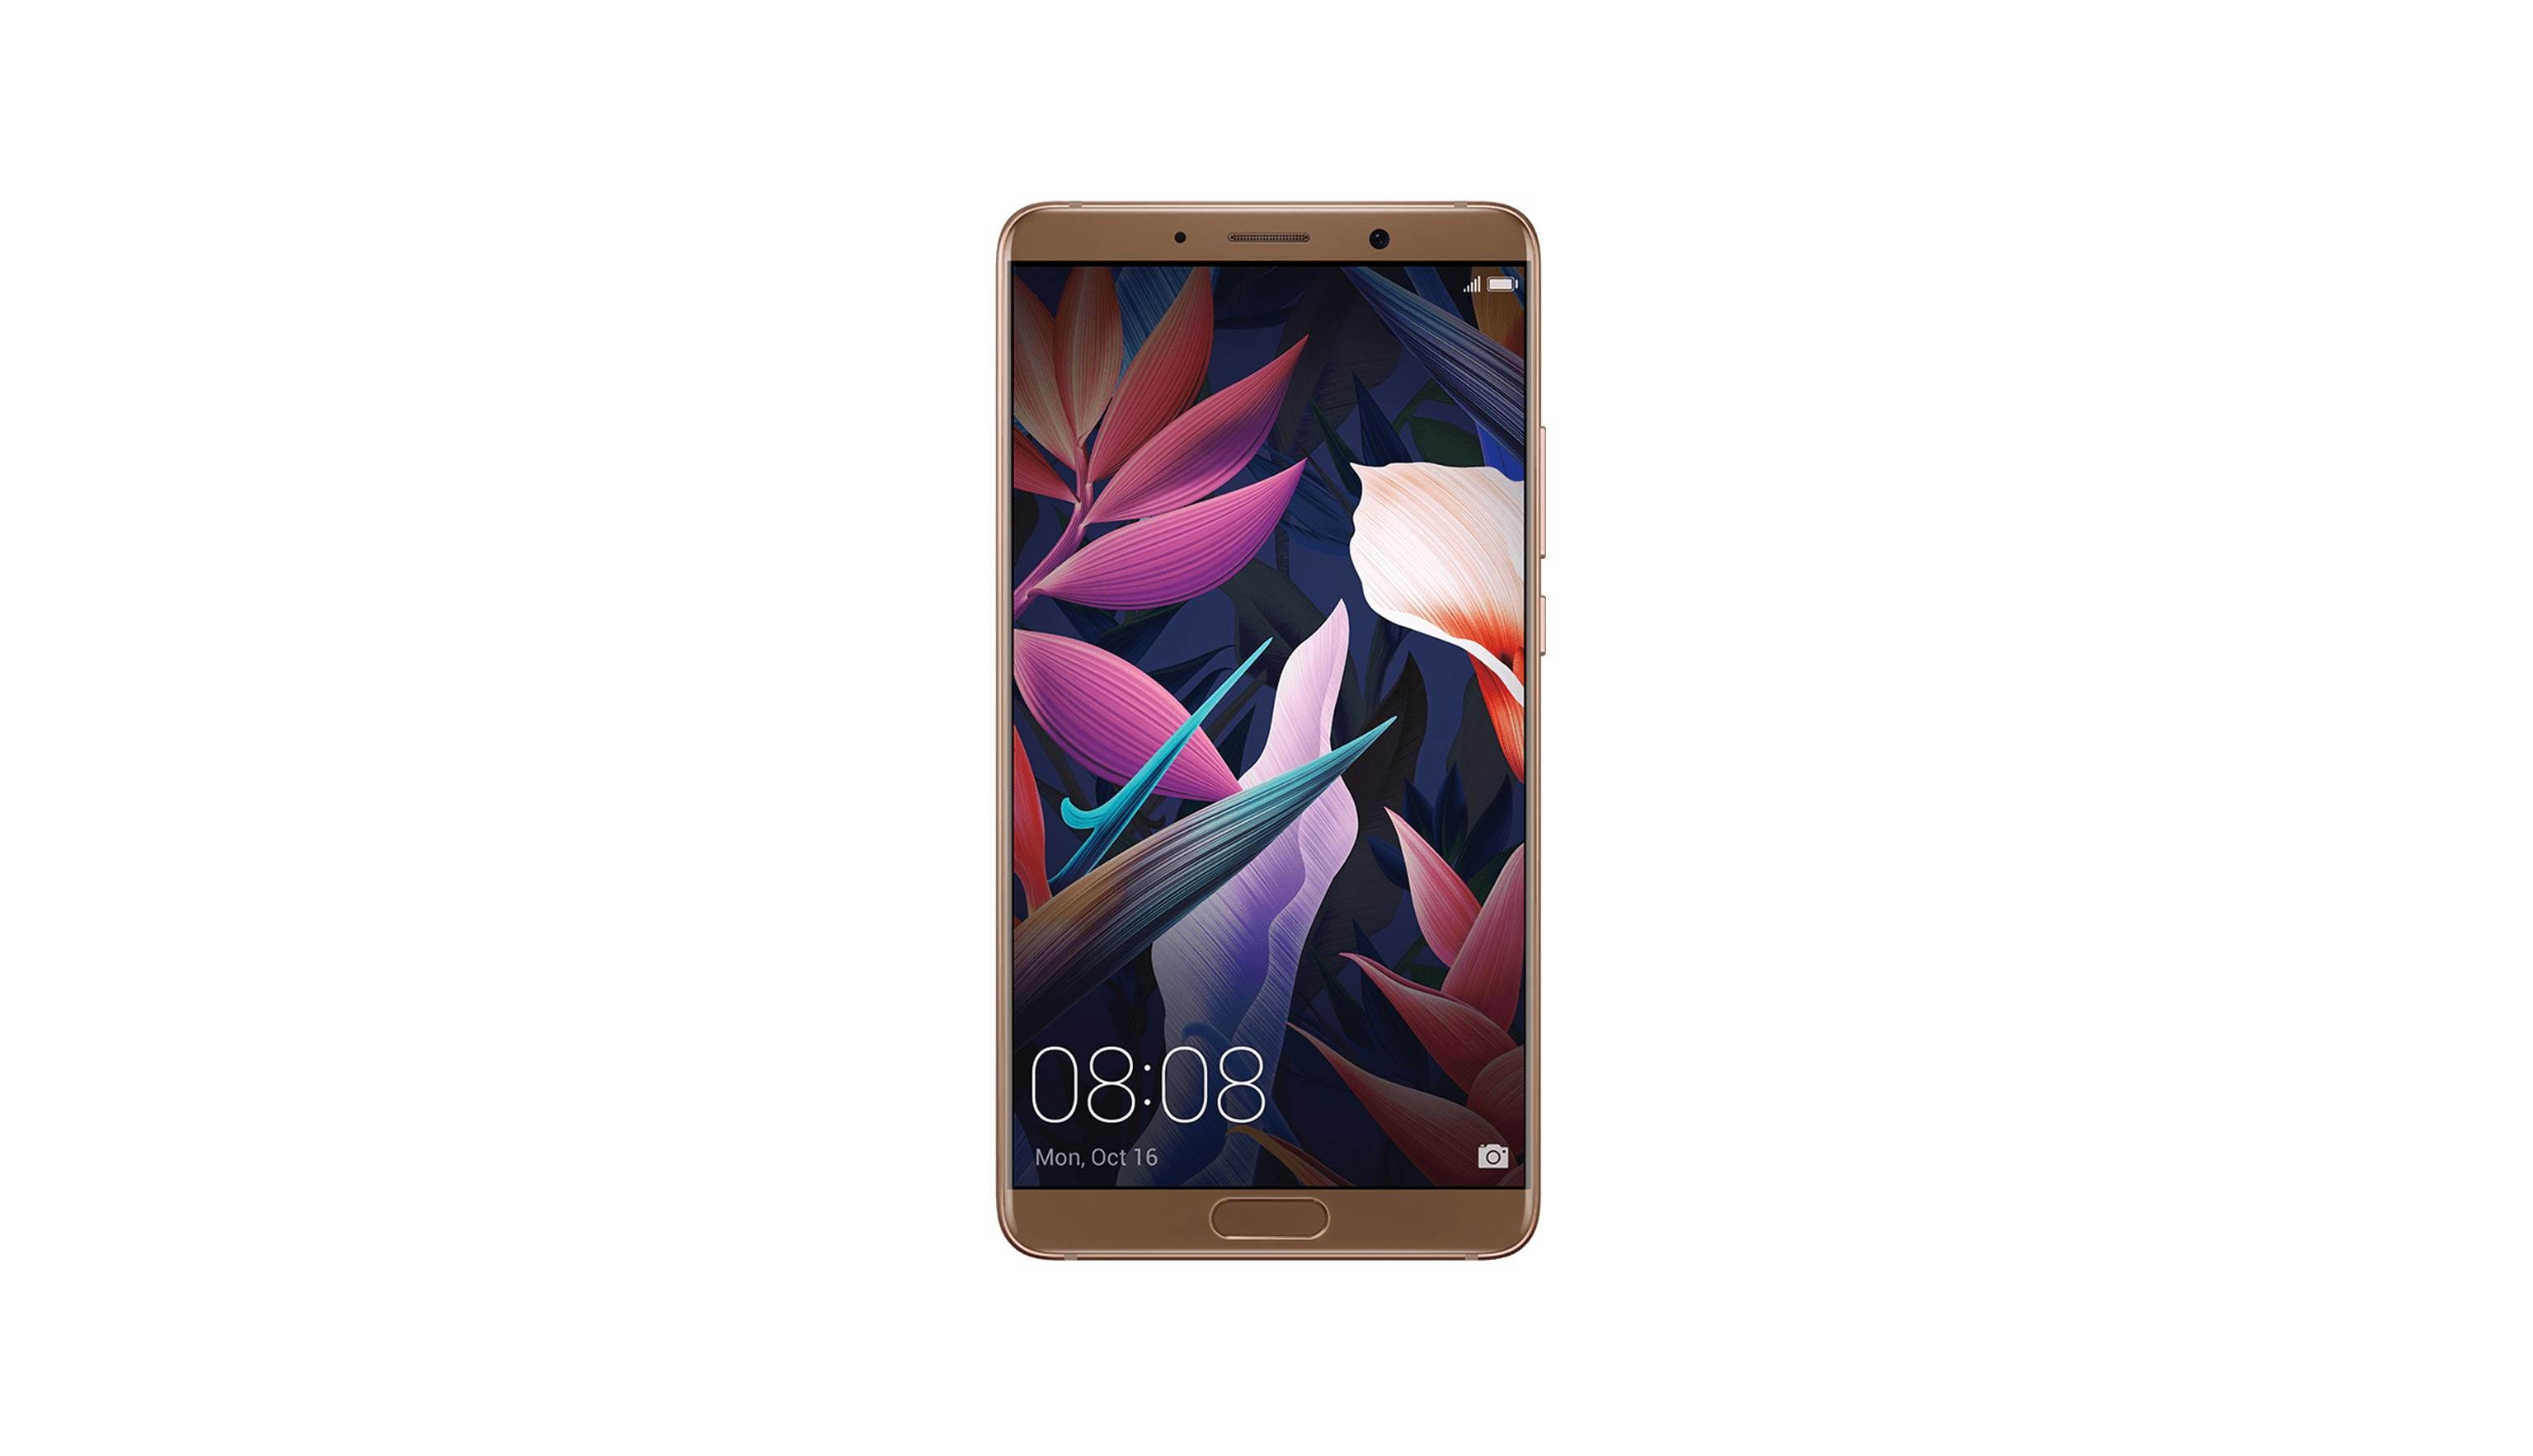 Huawei Mate 10 (2017) - Mocha Brown (2)